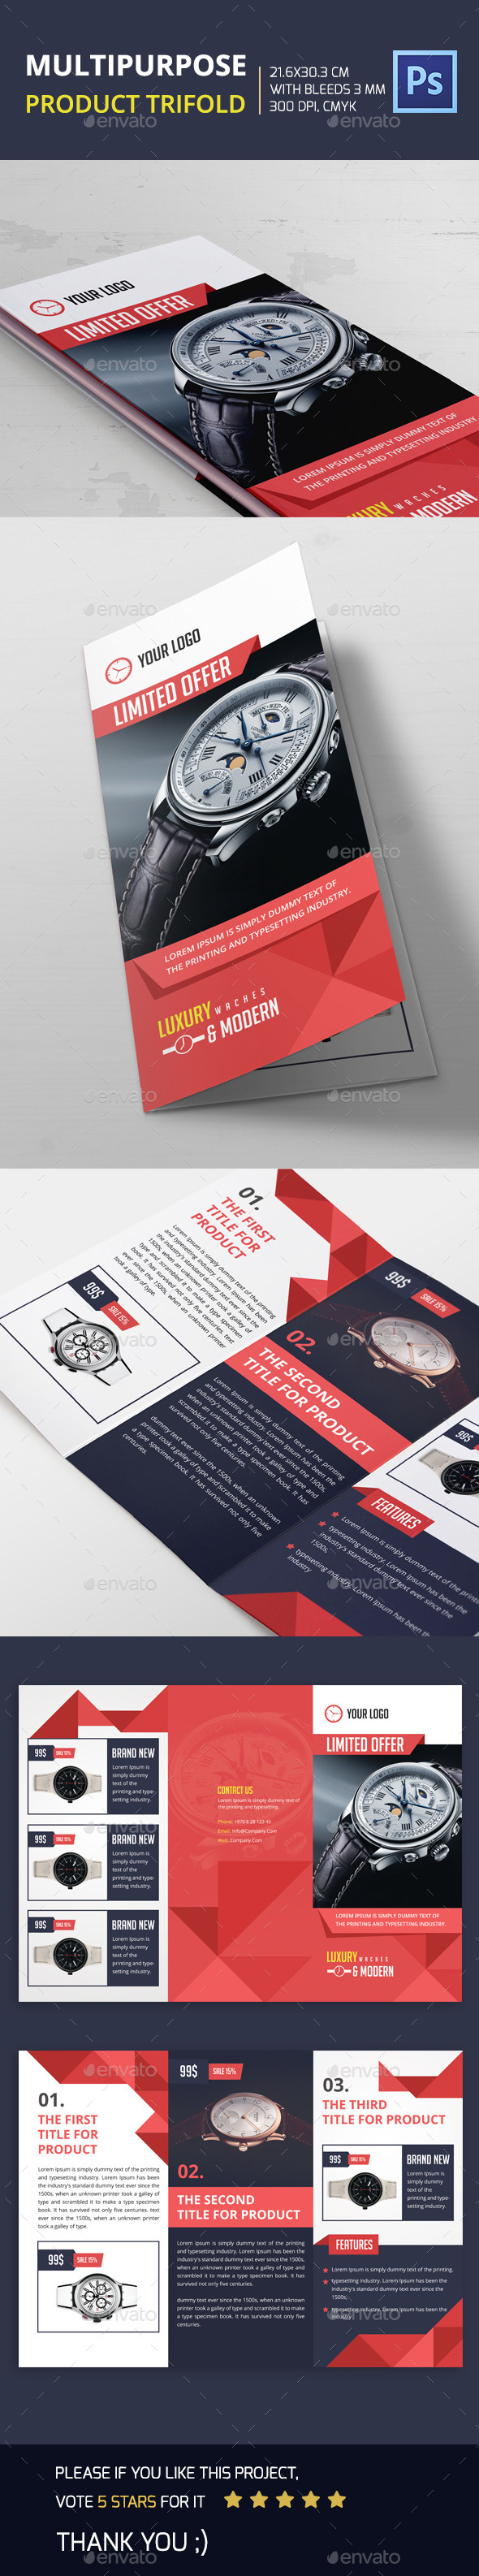 Multipurpose Product Trifold - Brochures Print Templates